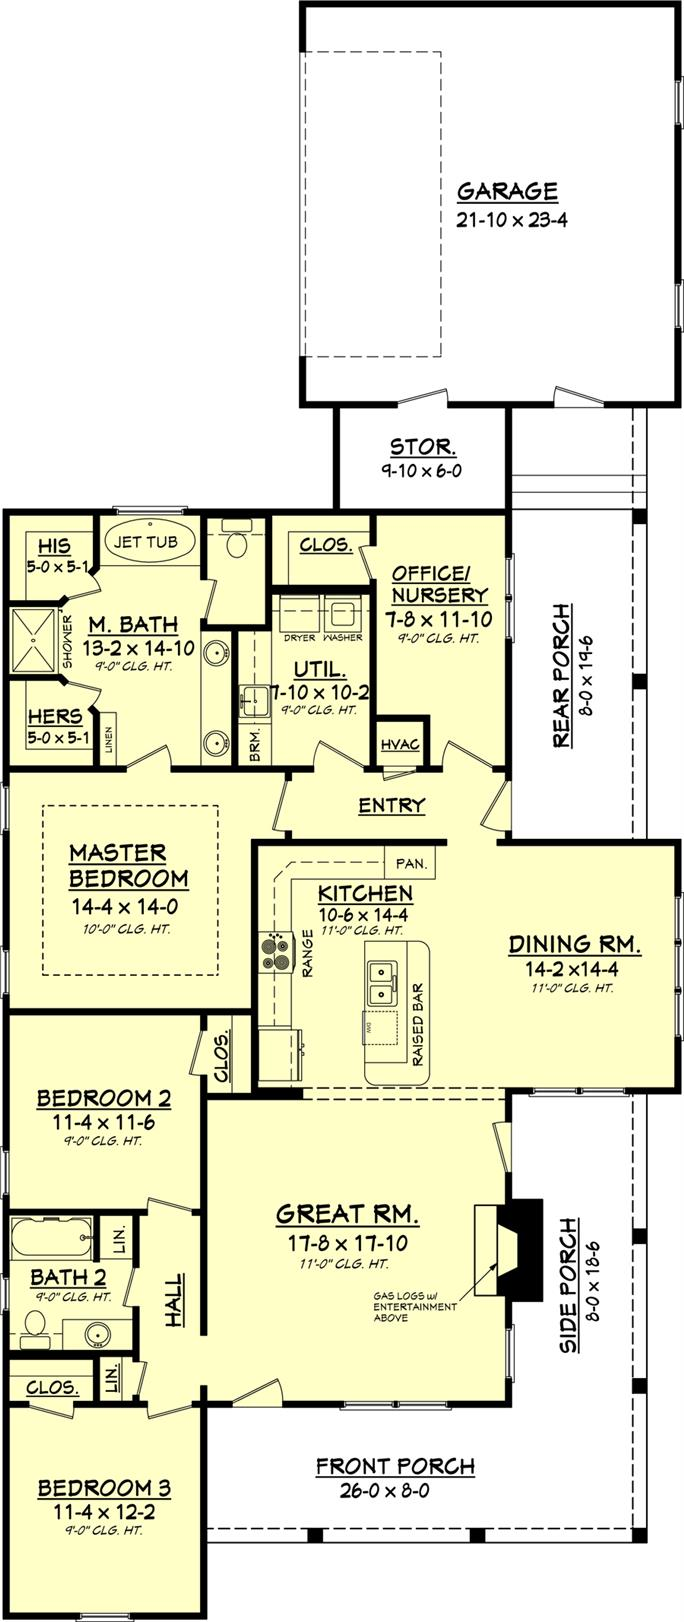 house plan 142 1048 3 bedroom 1900 sq ft ranch country home floor plan first story 142 1048 main level